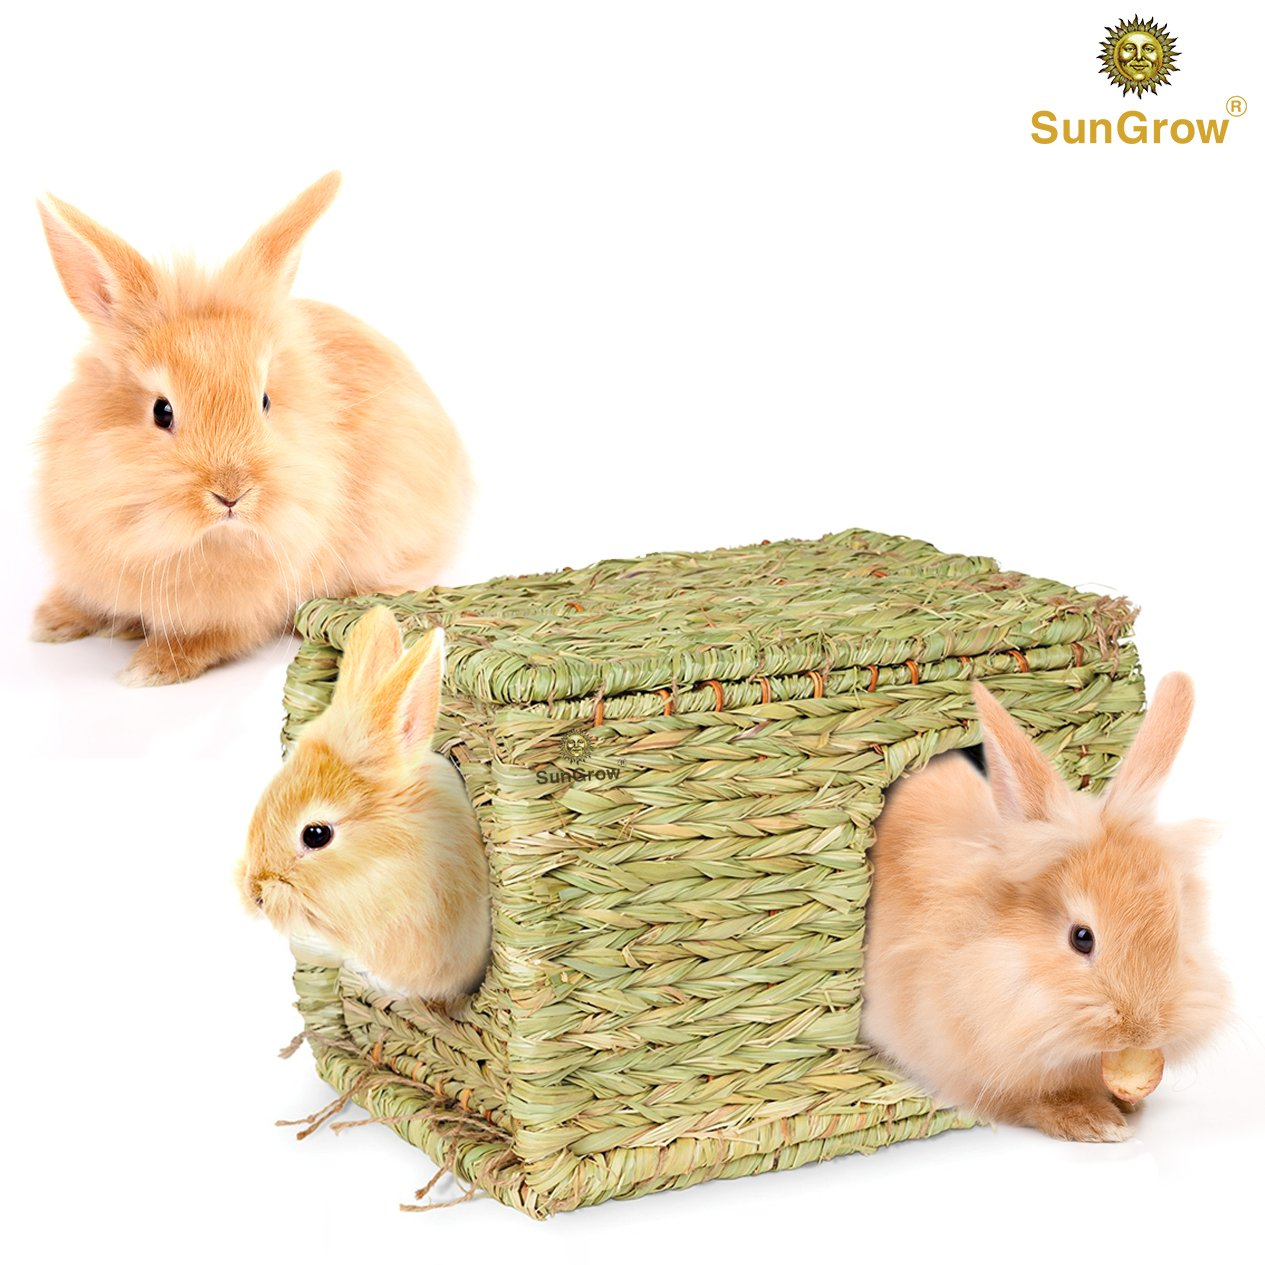 SunGrow Folding Woven Grass House for Rabbits, Guinea Pigs, Bunnies : Provides Comfort, Warmth & Security by Satisfying Natural Instincts: Multi-Utility, Edible, Non-Toxic, Chew Toy for Small Animals by SunGrow (Image #2)